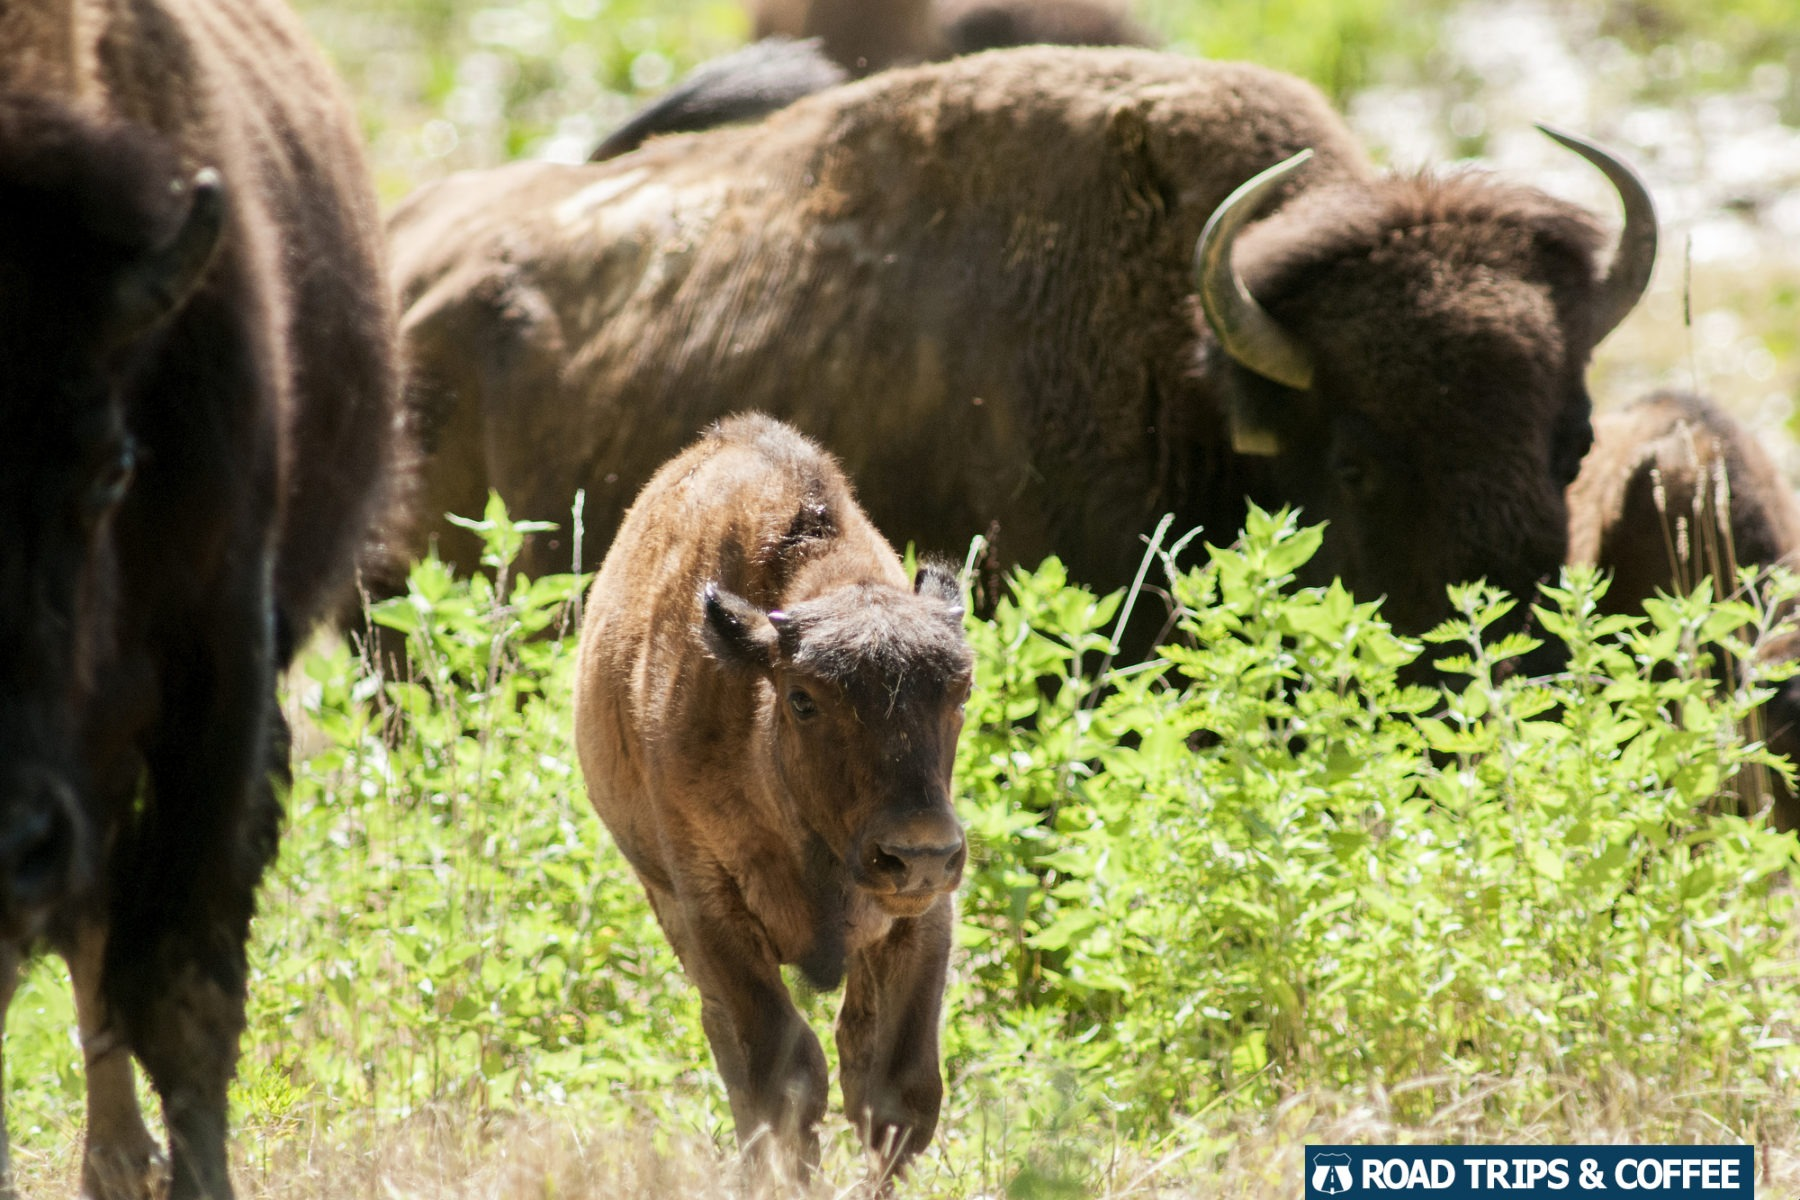 A bison calf runs through a grassy field surrounded by adult bison in the Elk & Bison Prairie at Land Between the Lakes National Recreation Area